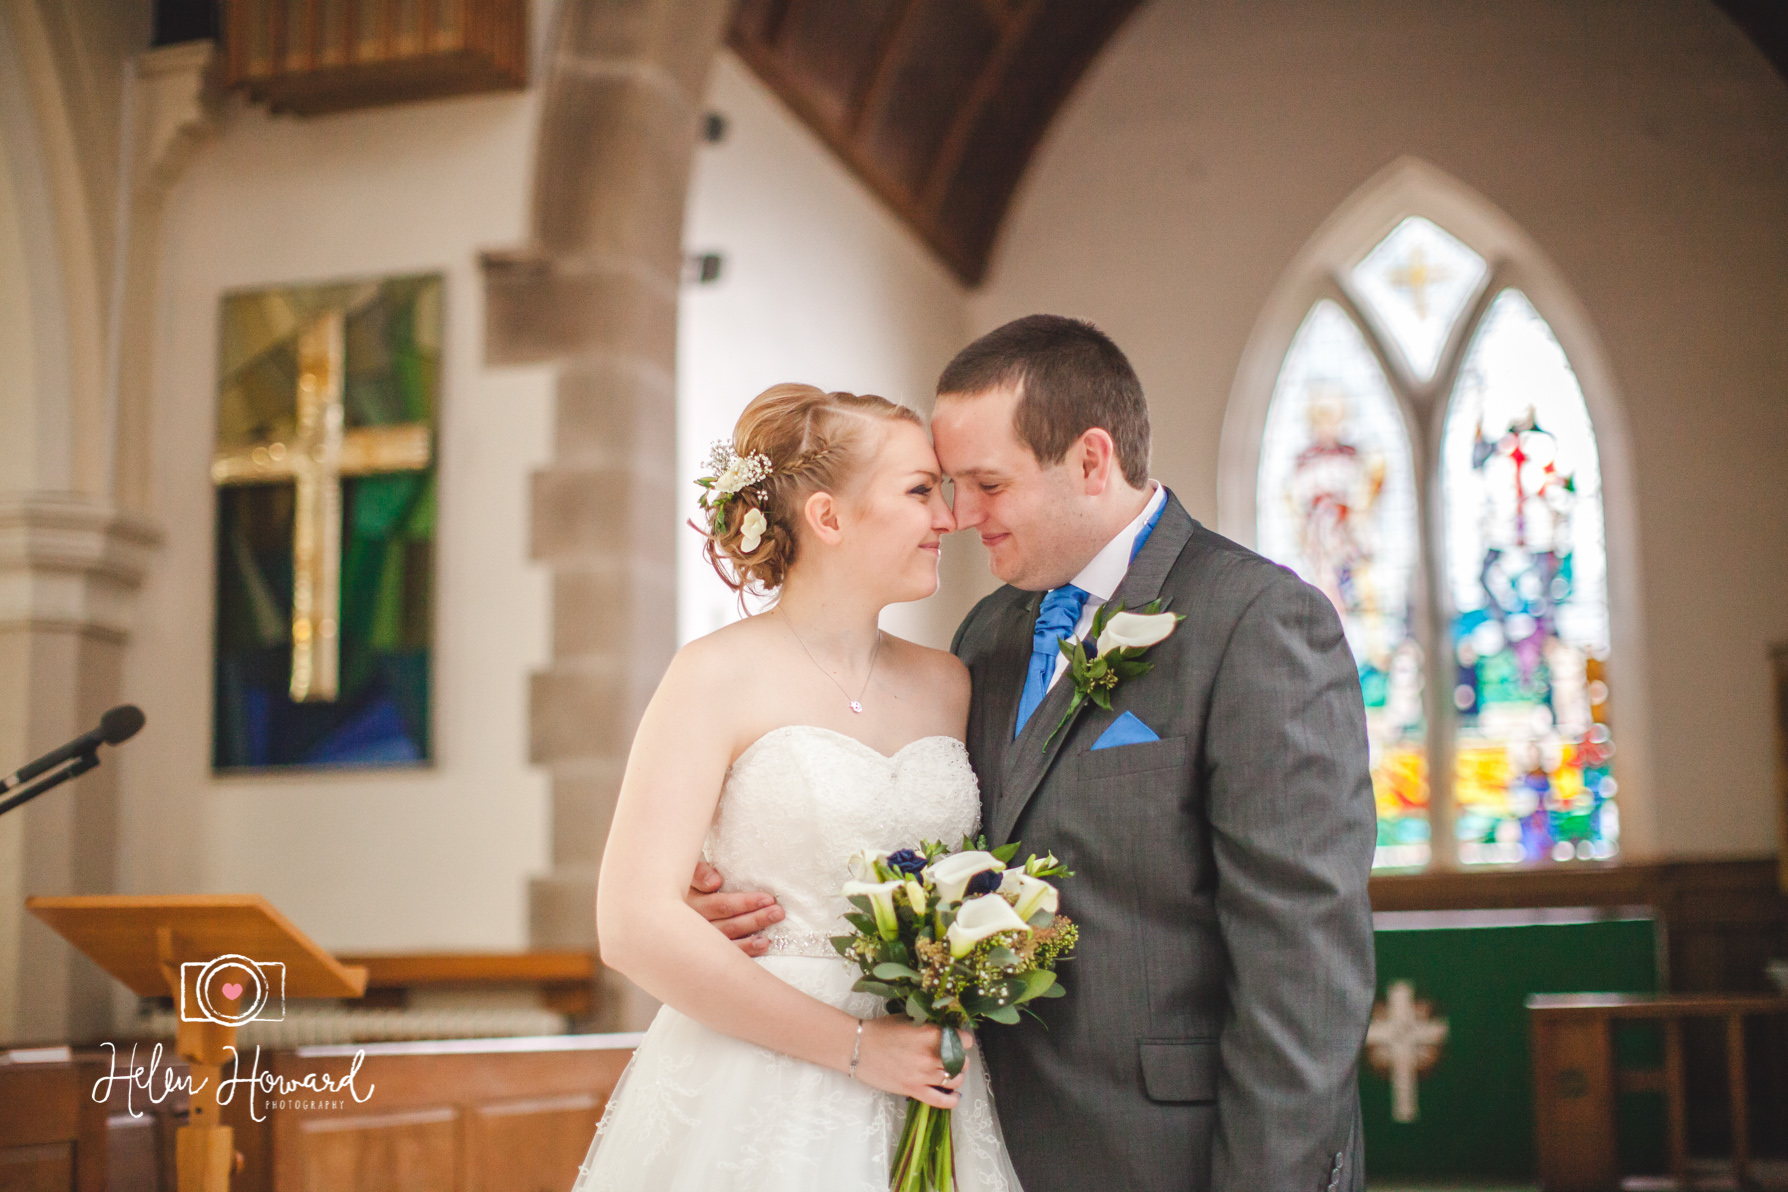 Christchurch in burntwood wedding photography of a bride and Groom